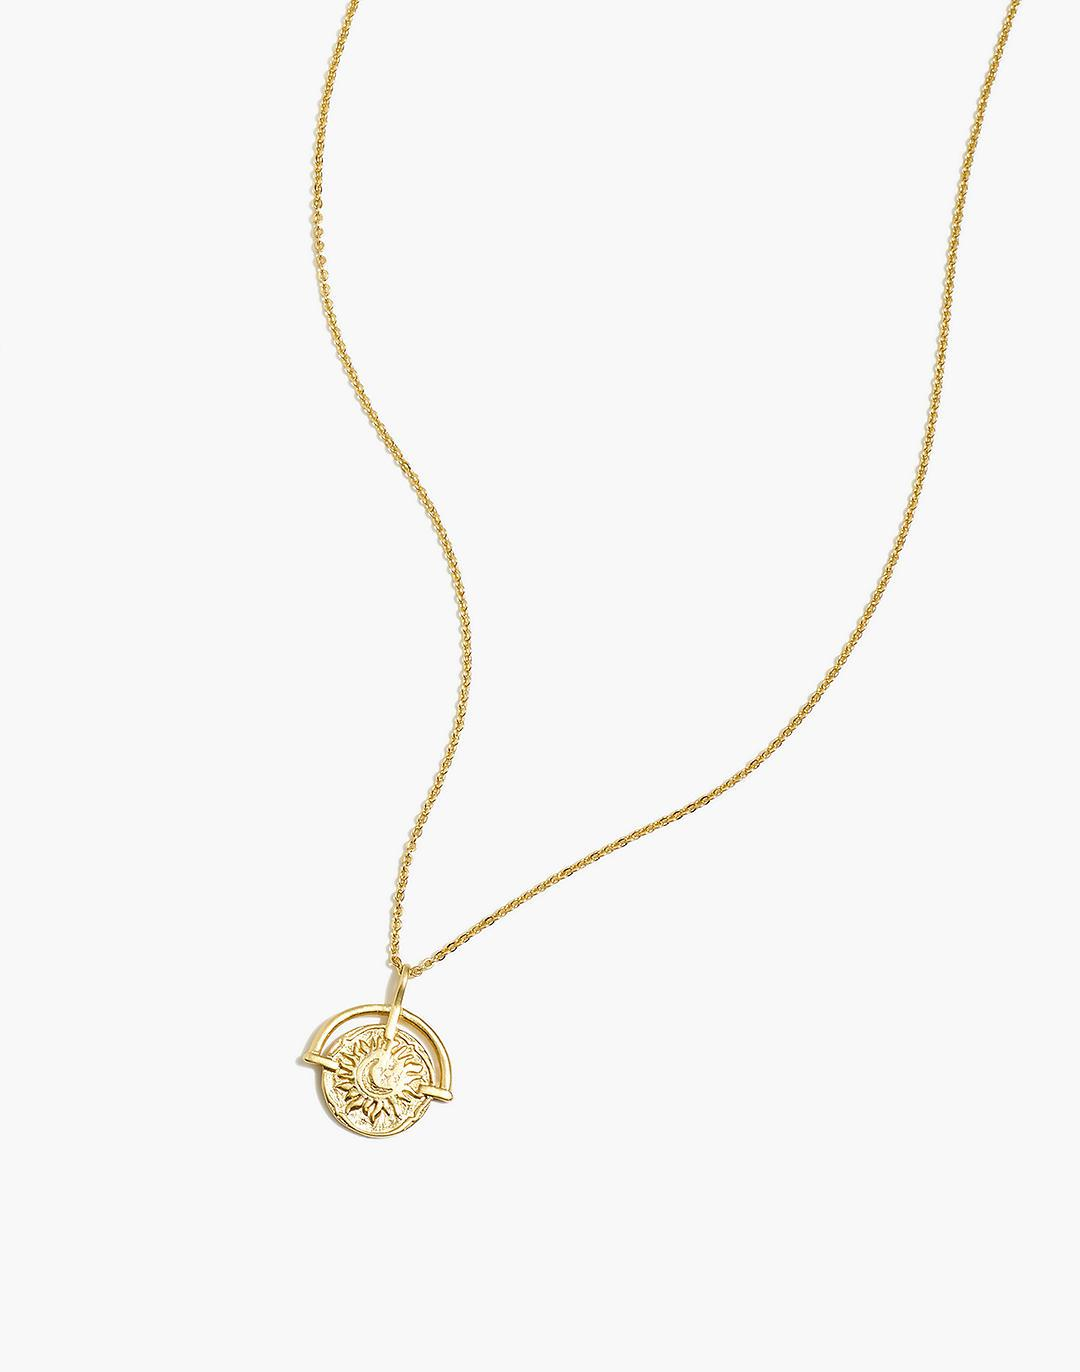 Sunray Coin Pendant Necklace